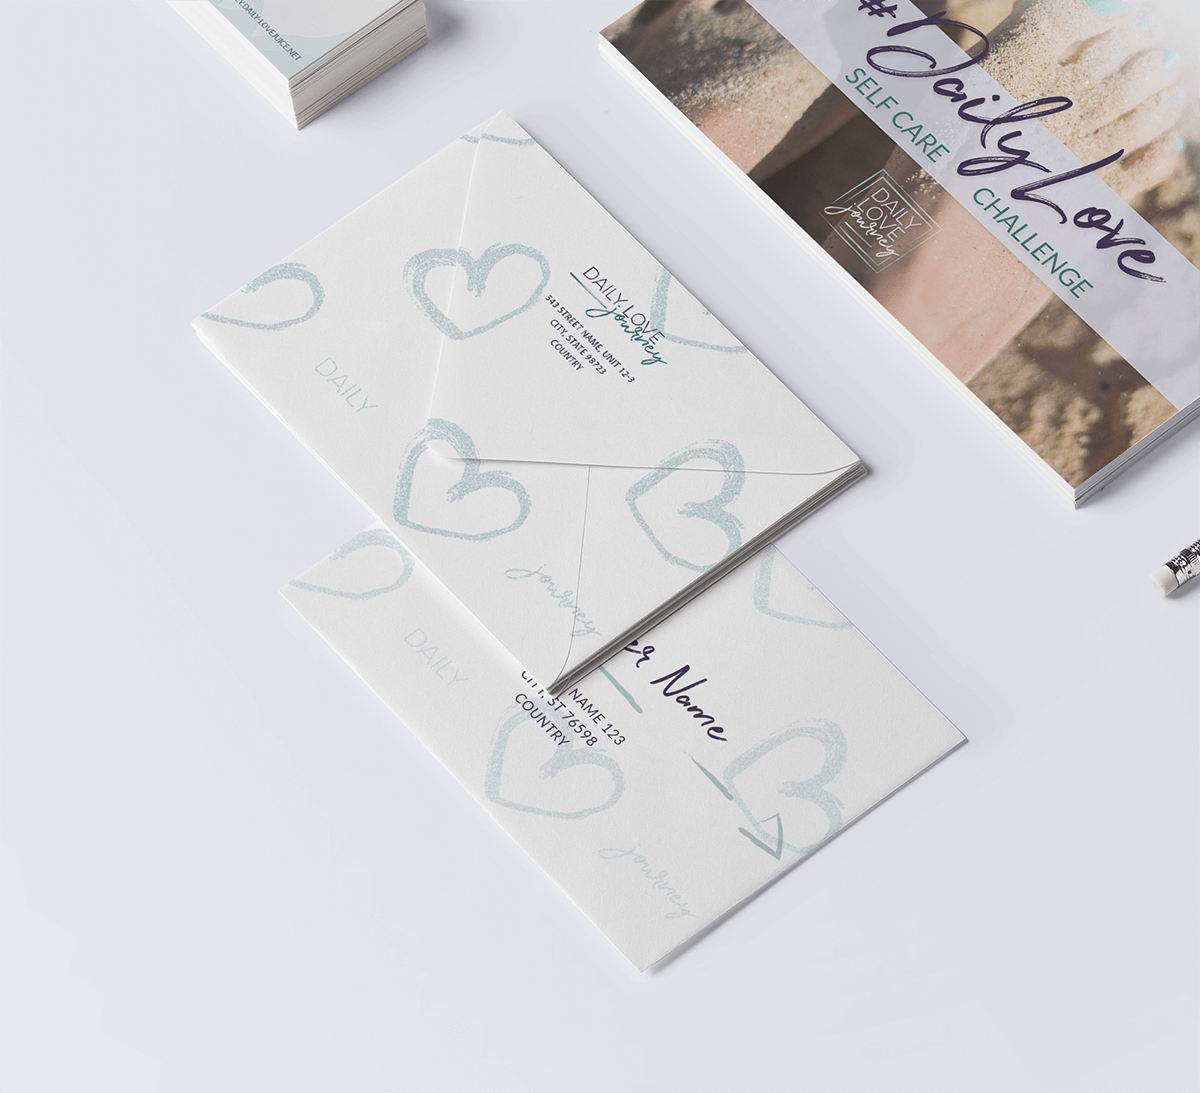 Stationery closeup of the envelopes for Daily Love Journey